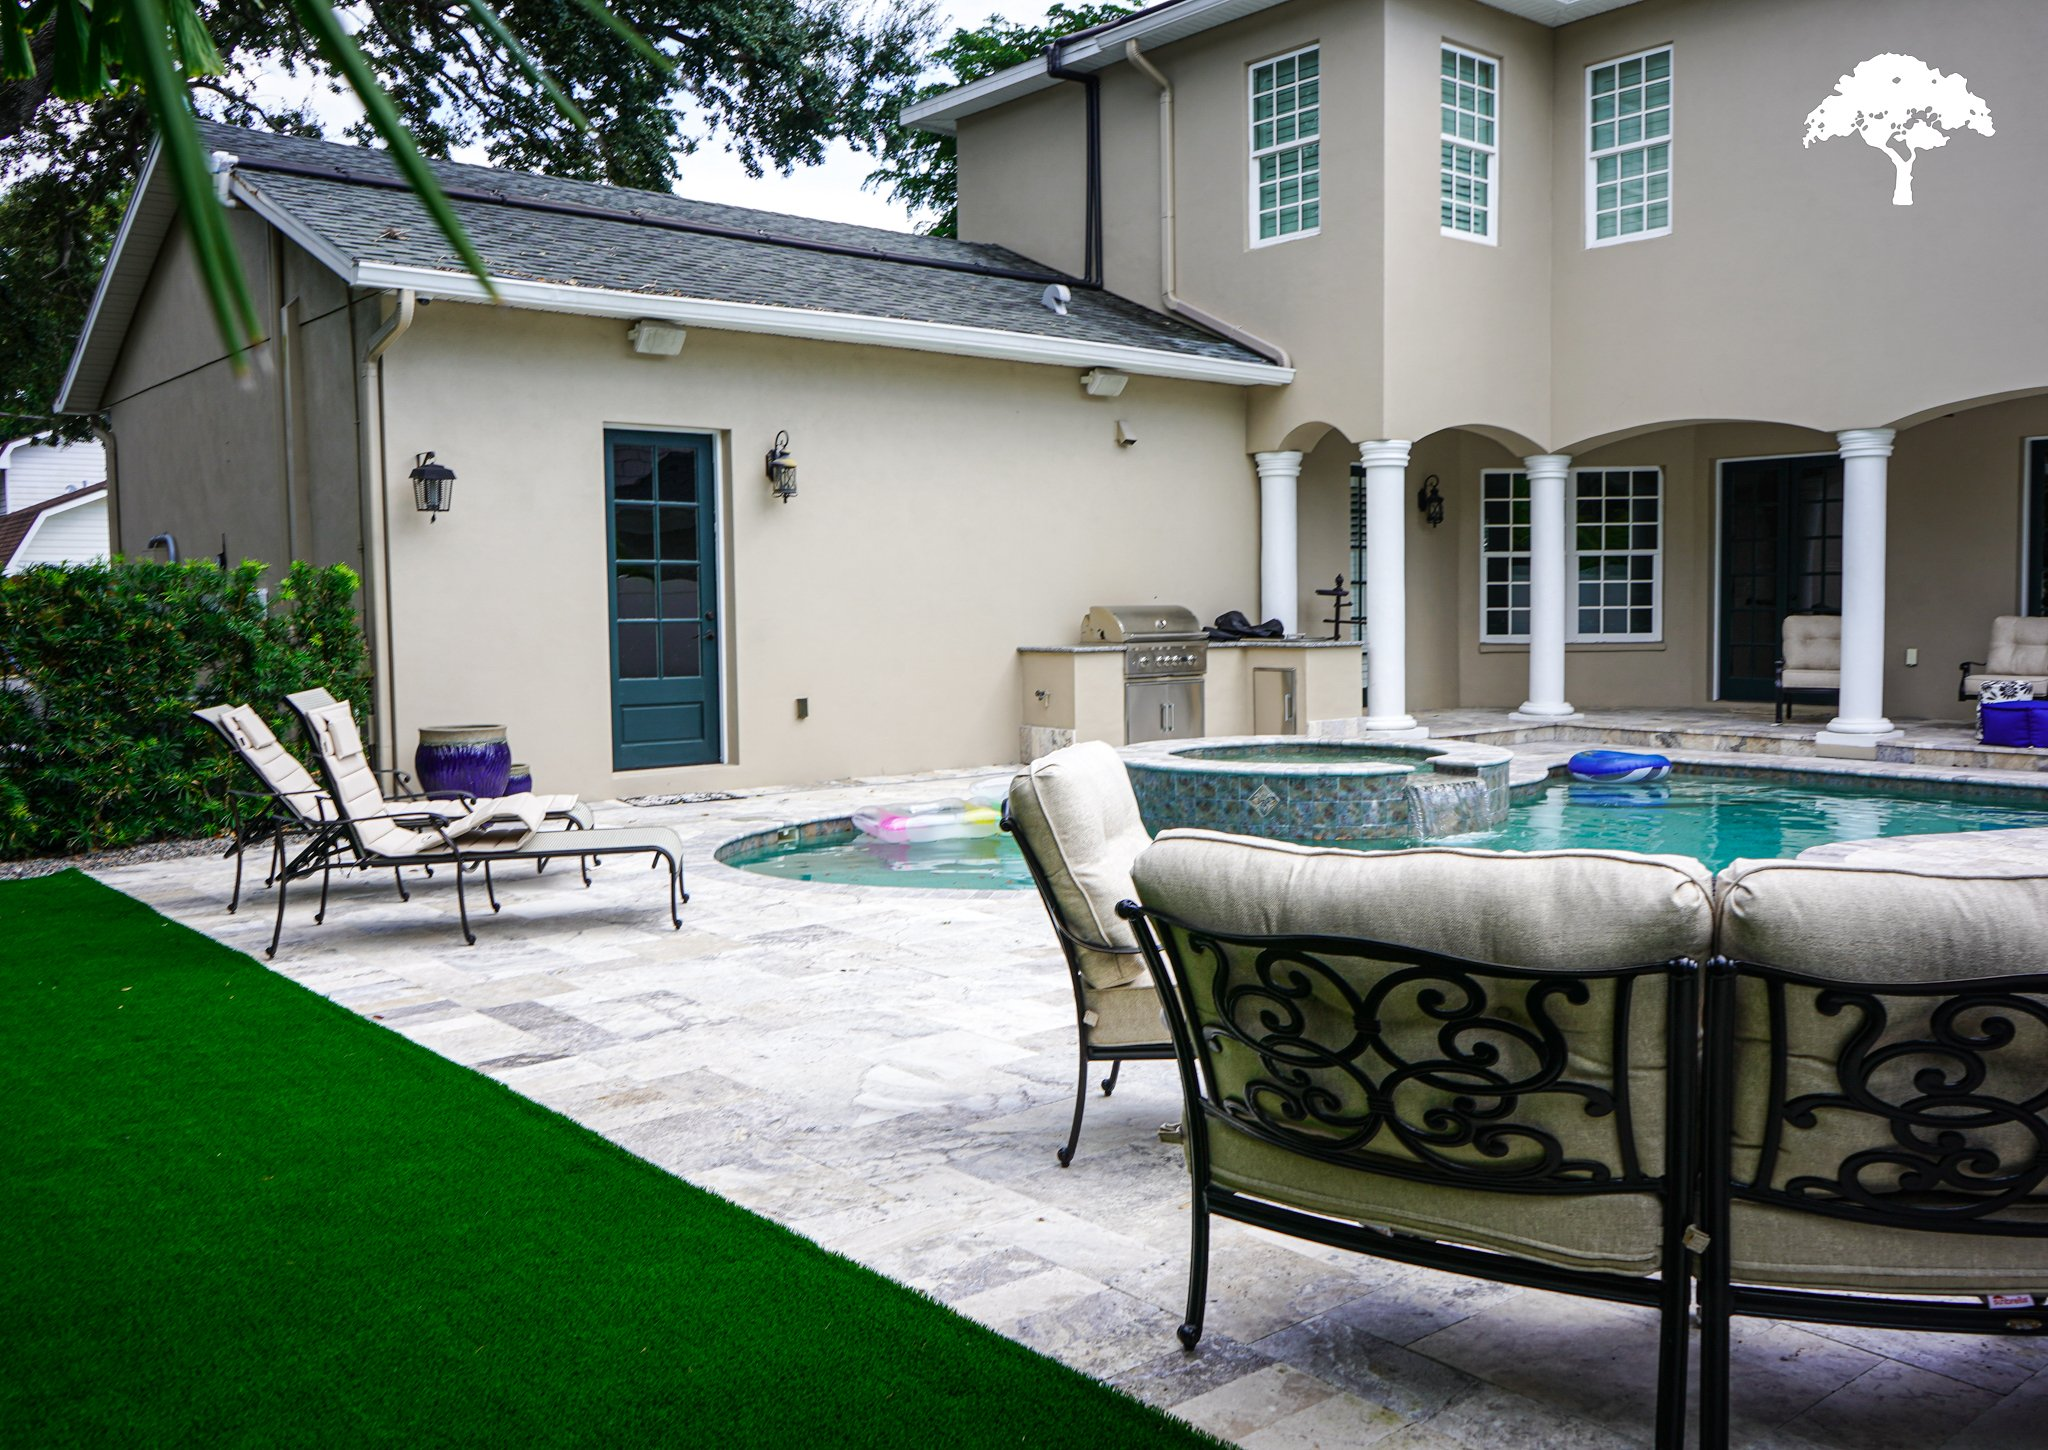 tampa landscape design with artificial turf pavers pool and outdoor kitchen in palma ceia tampa florida